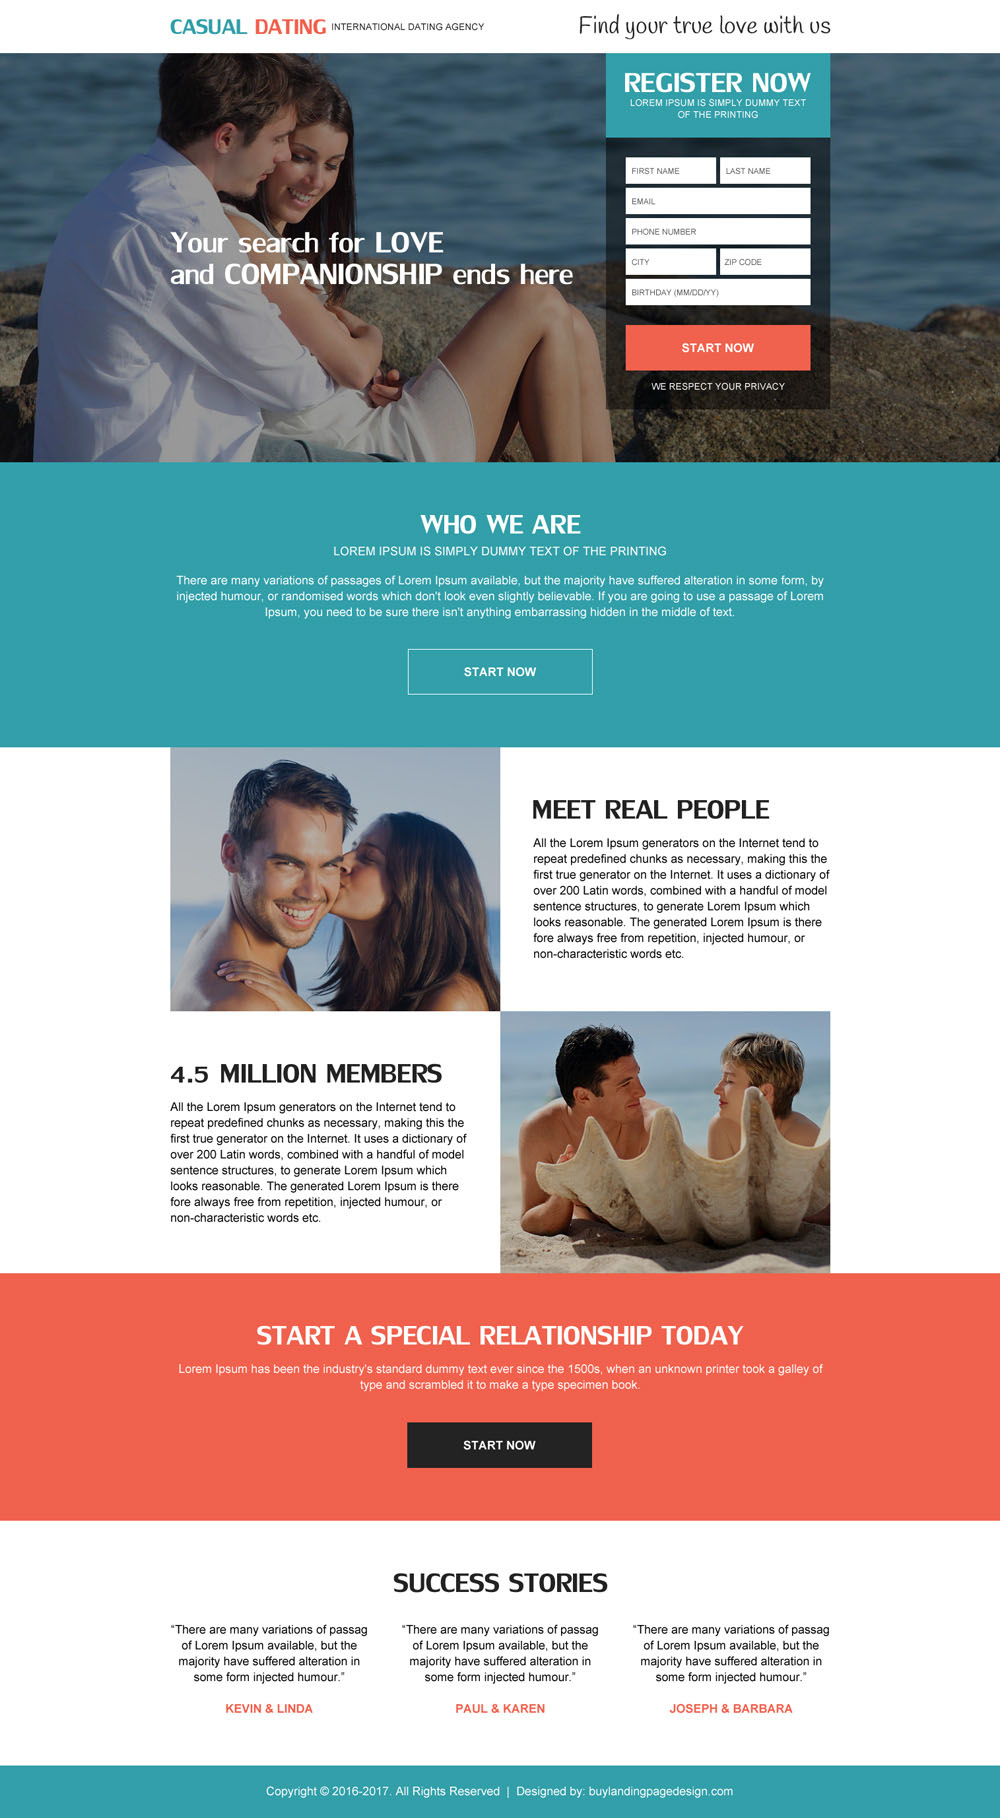 international-dating-agency-sign-up-lead-capture-landing-page-design-030